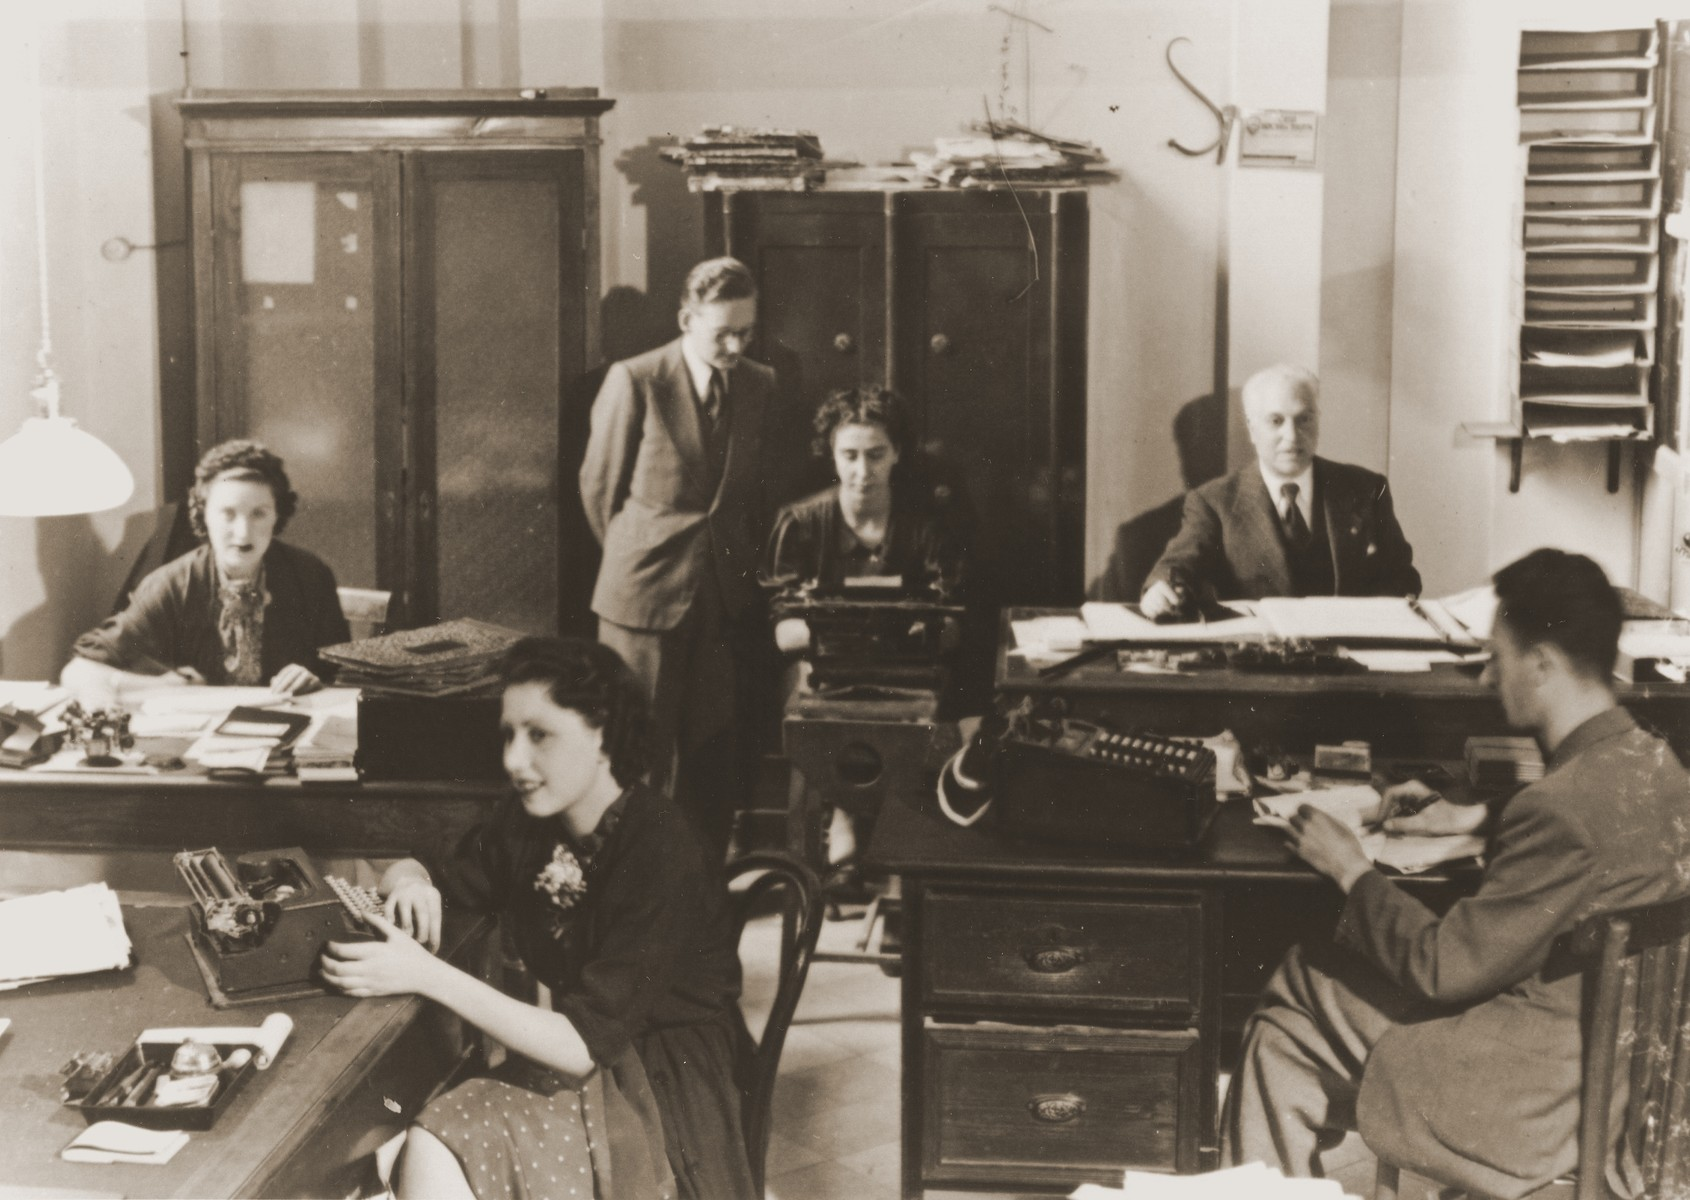 The staff of the Foto-Brenner company at work in their office in Rome.